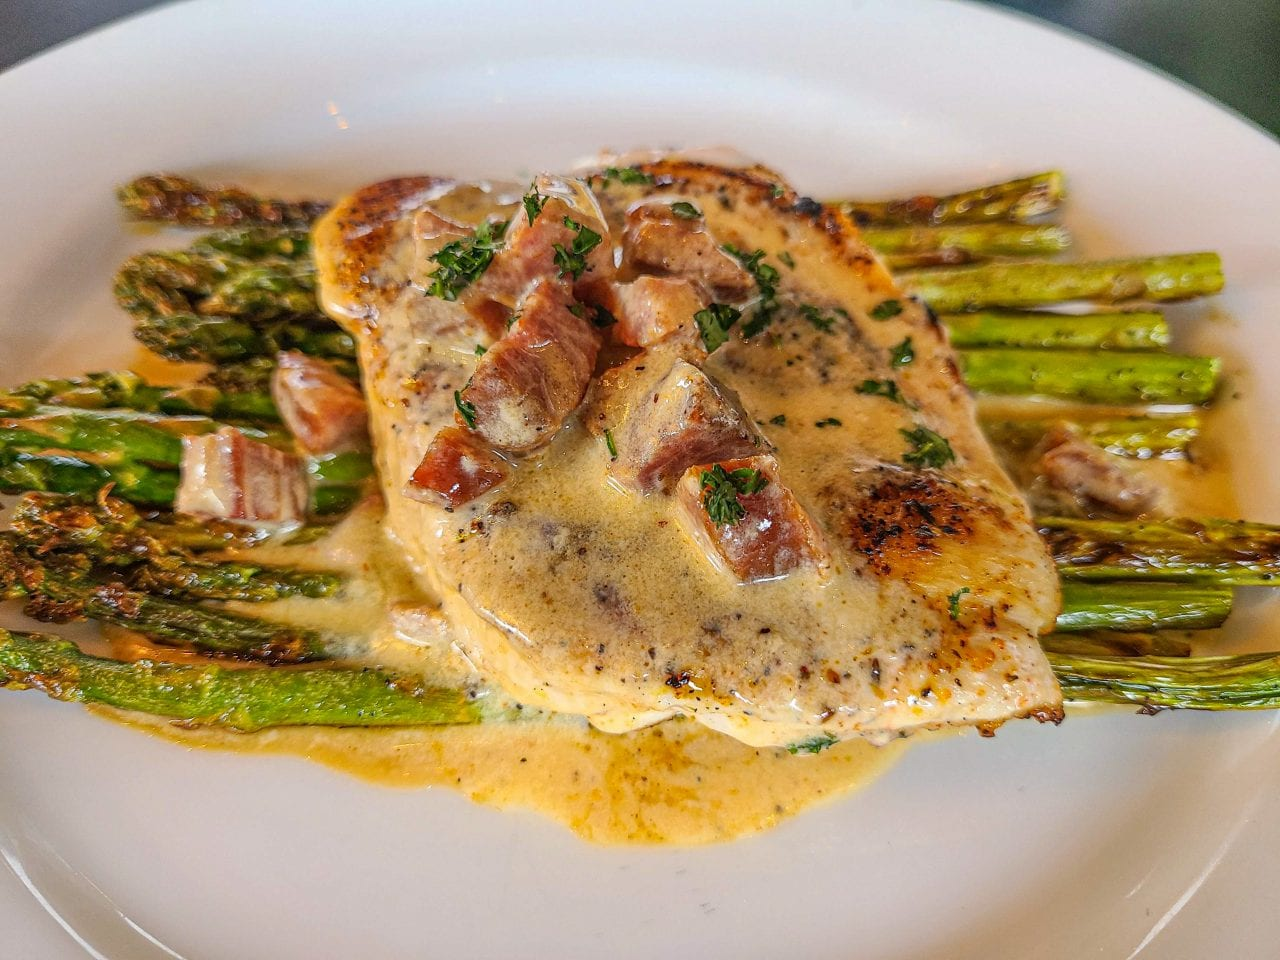 Patio 44 blackened chicken in a Cajun cream sauce over grilled asparagus